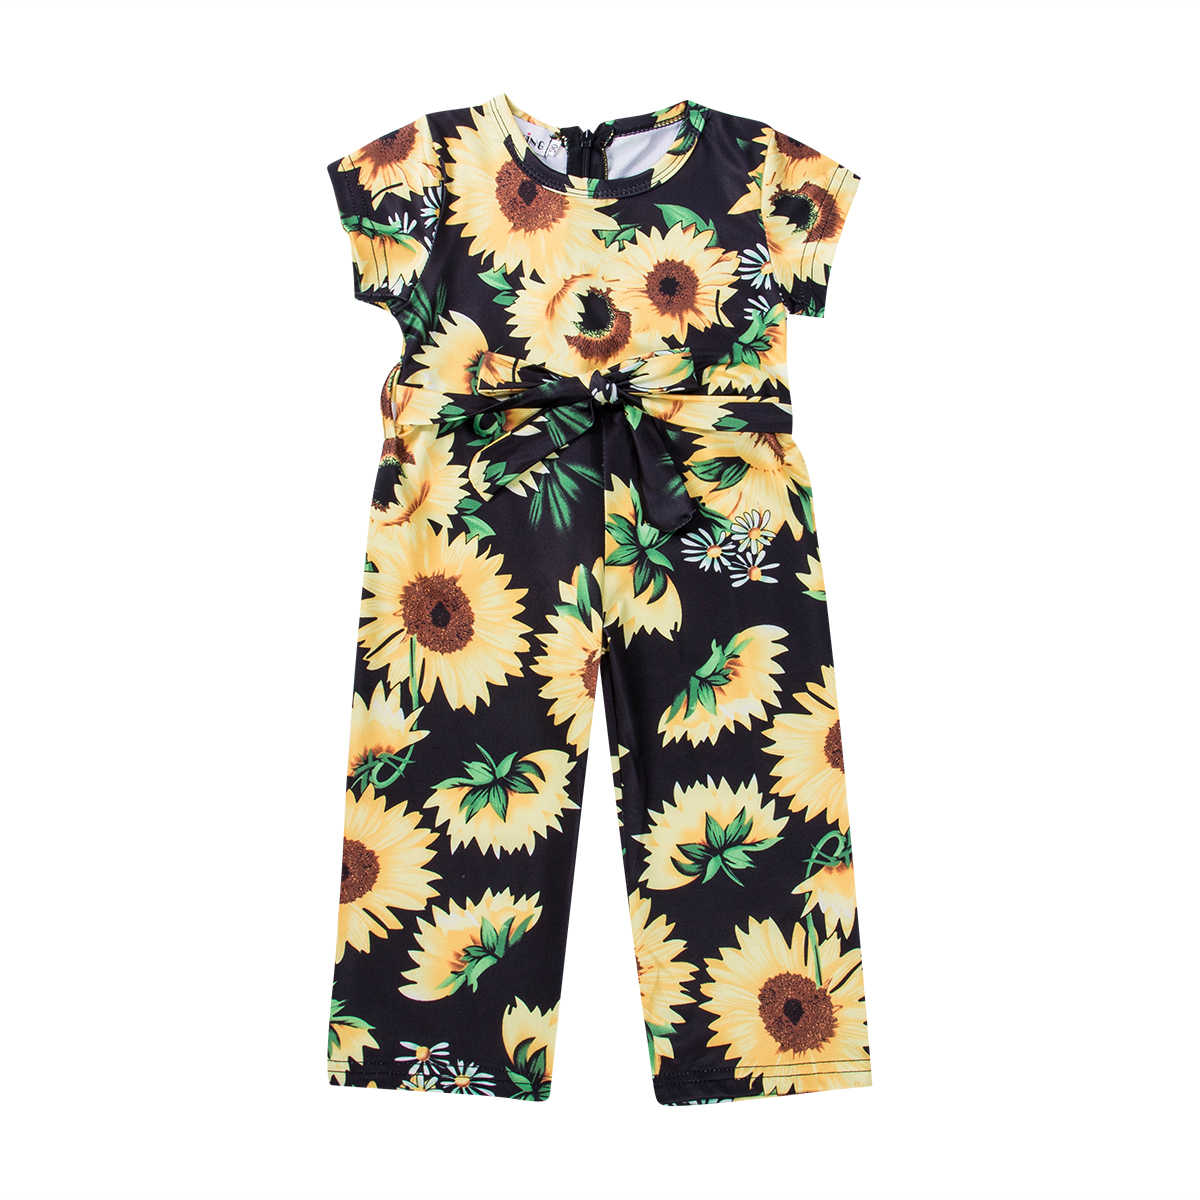 46e6085207b3d 2019 Summer Toddler Kids Baby Girl Sunflower Romper Short Sleeve Belt Bow  Princess Girls Jumpsuit Playsuit